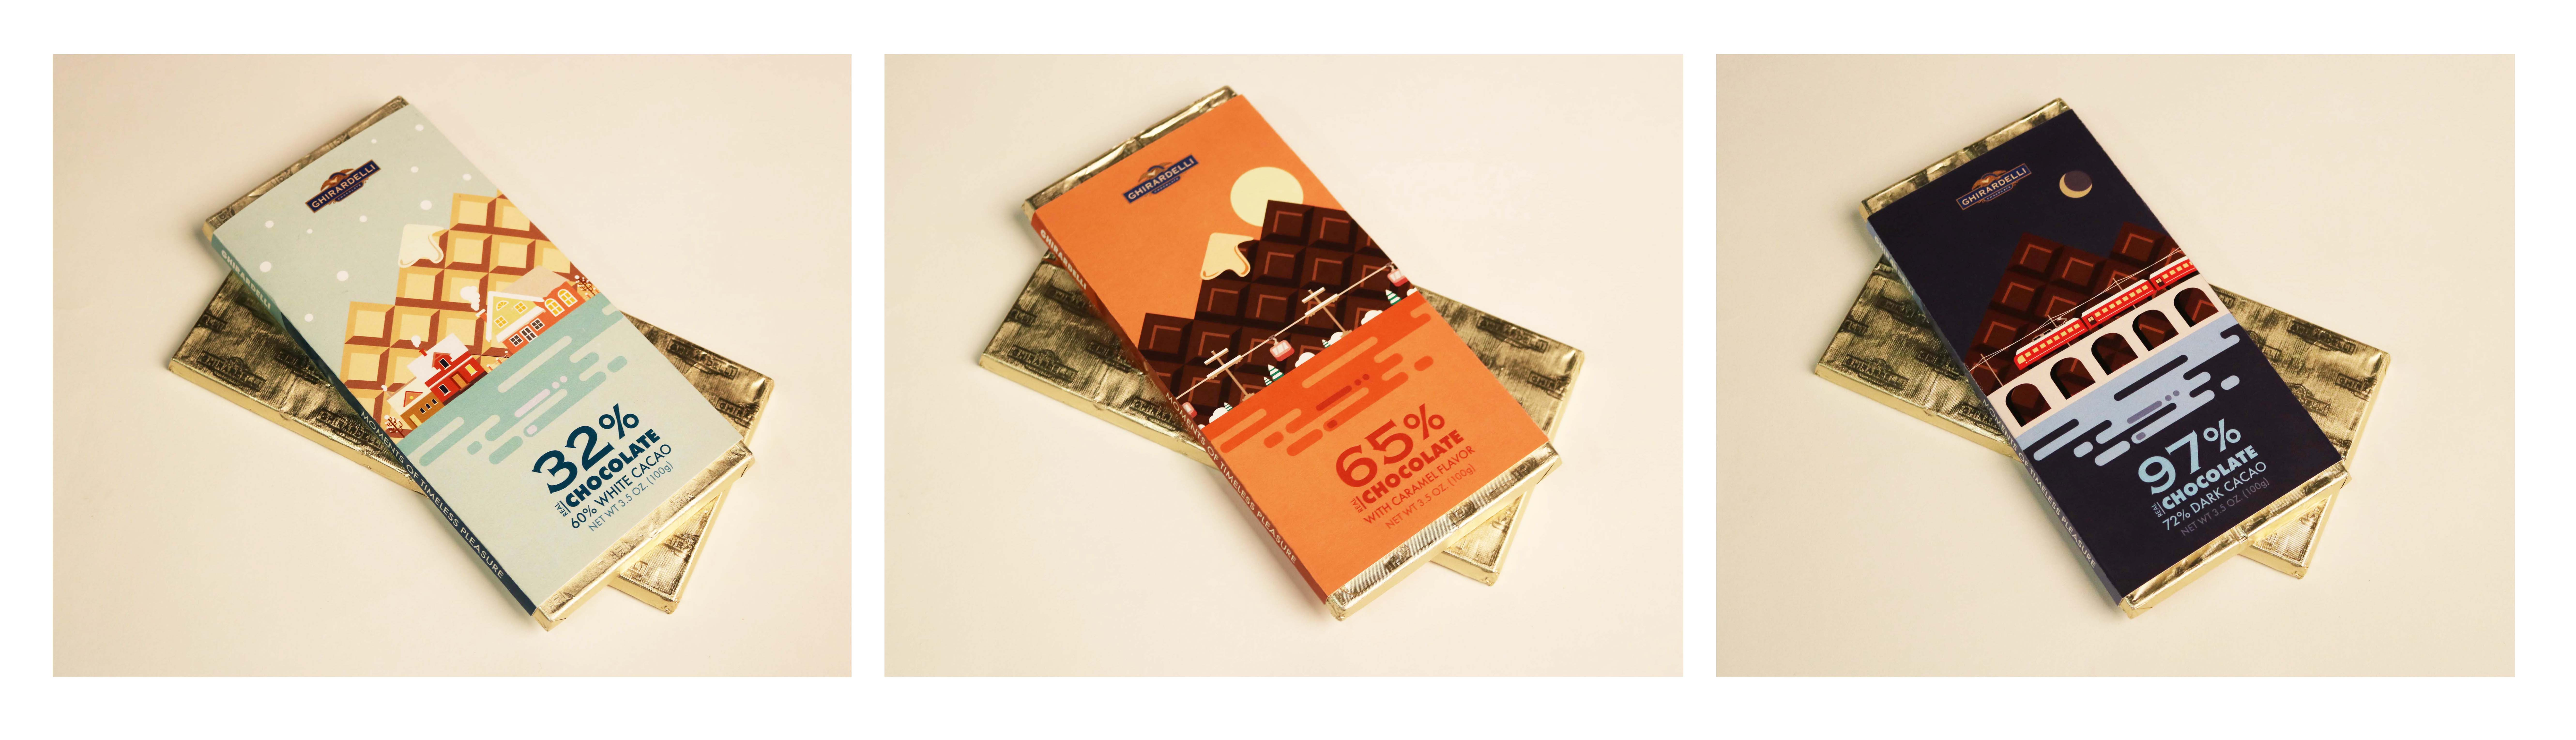 Swiss concept chocolate package